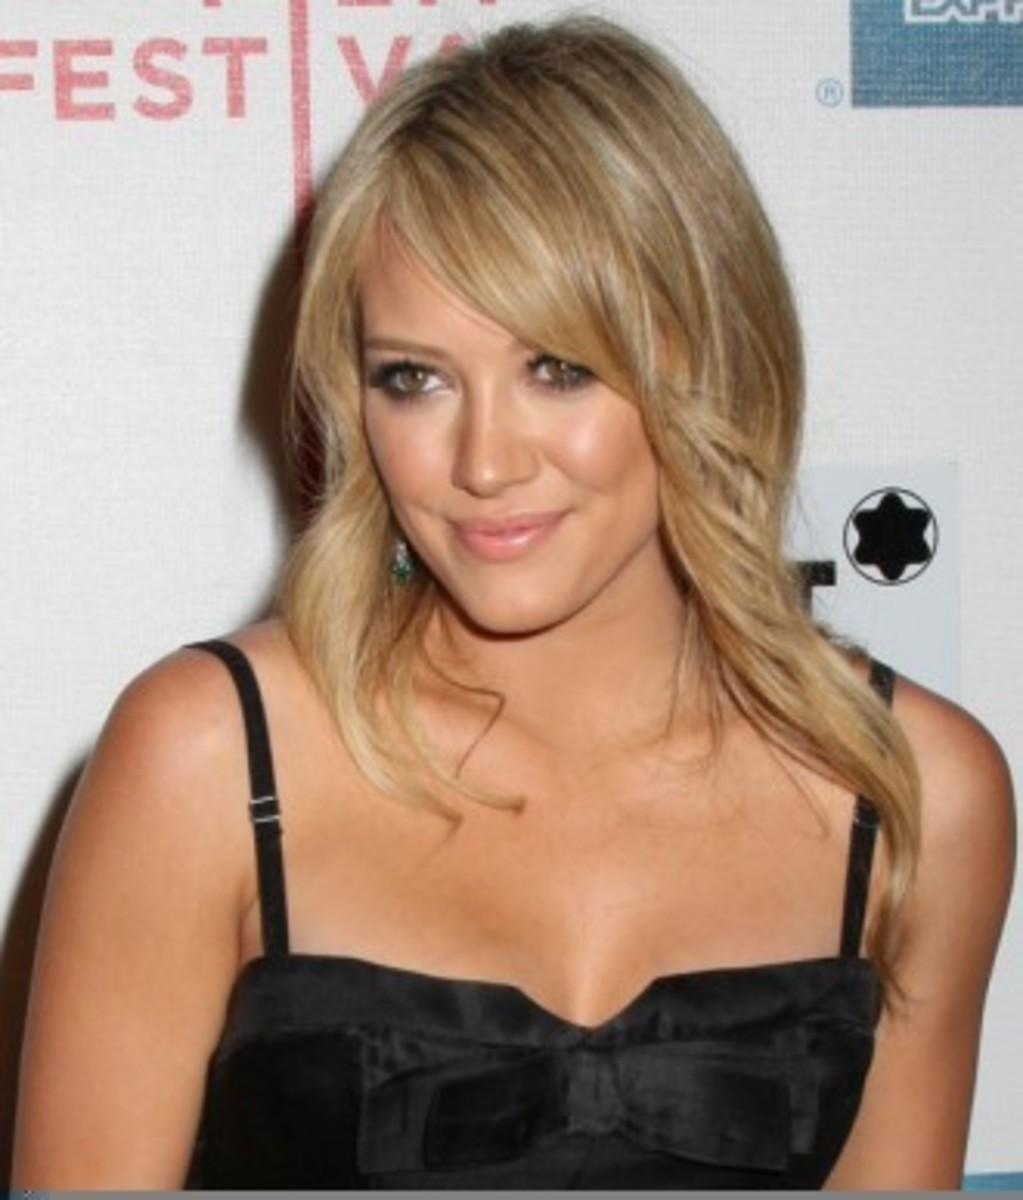 Medium-legnth layered haircut with side-swept bangs for thin hair.